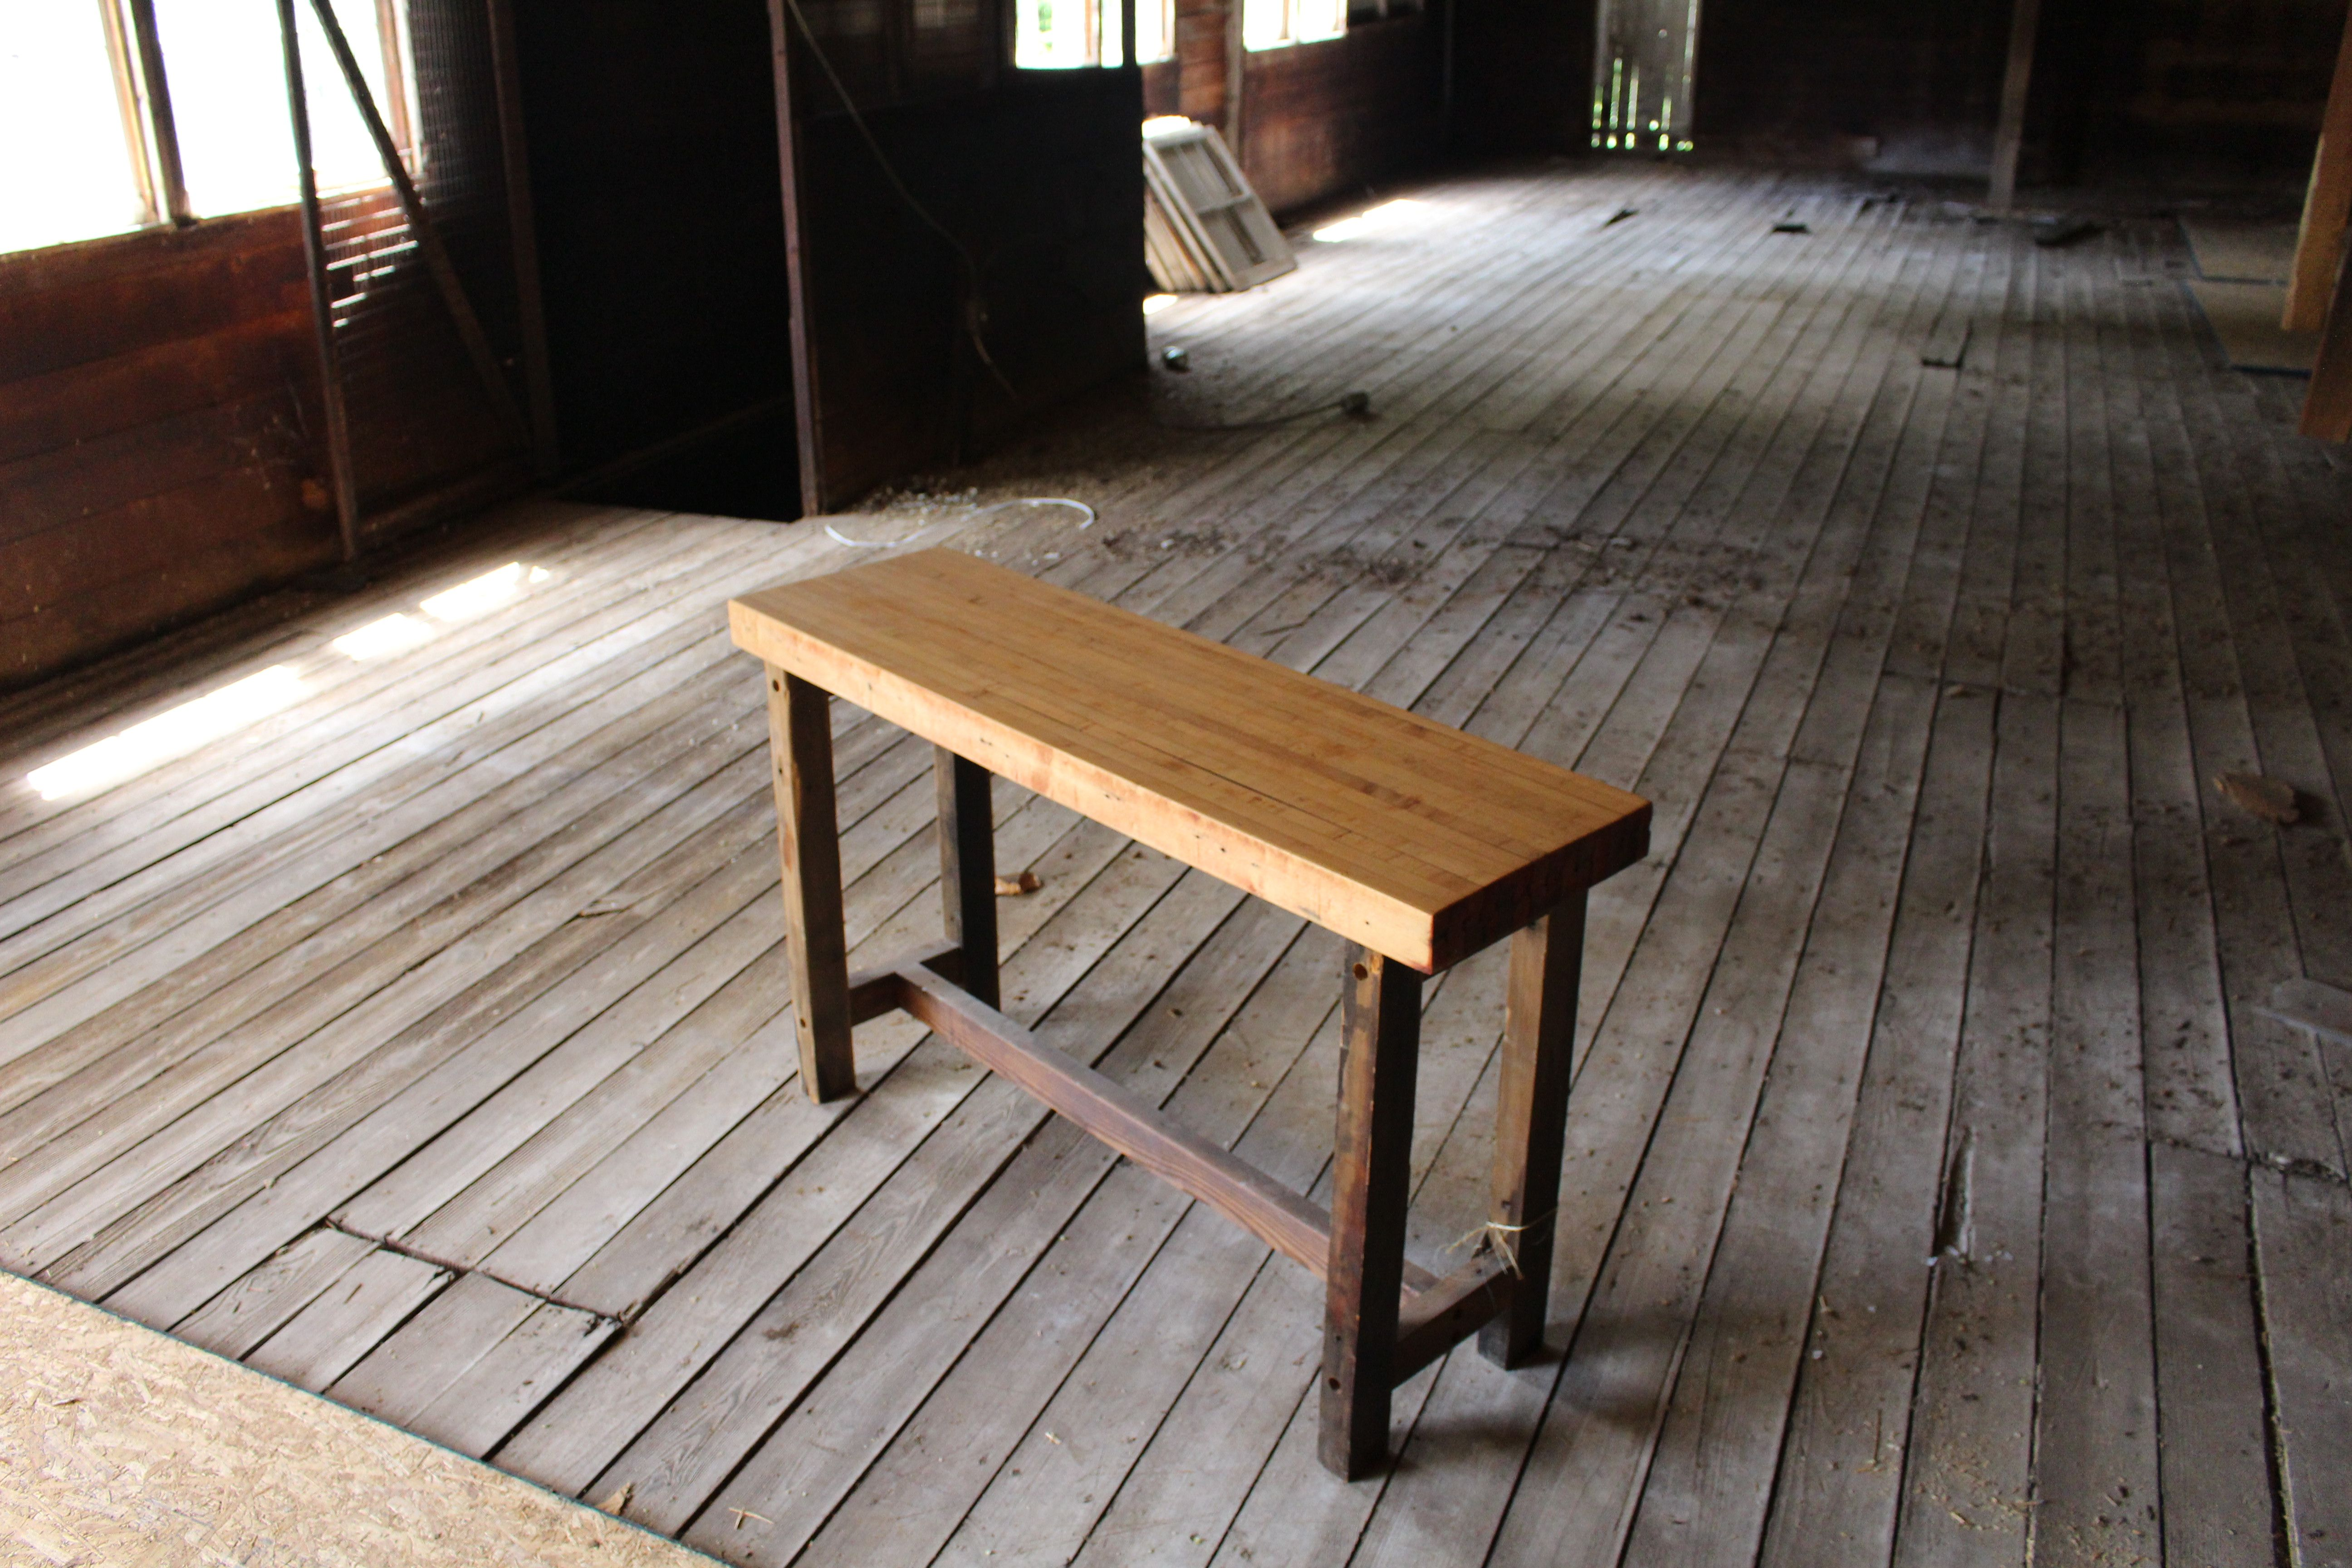 Buy a hand crafted reclaimed barn wood and bowling alley for Buy reclaimed barn wood